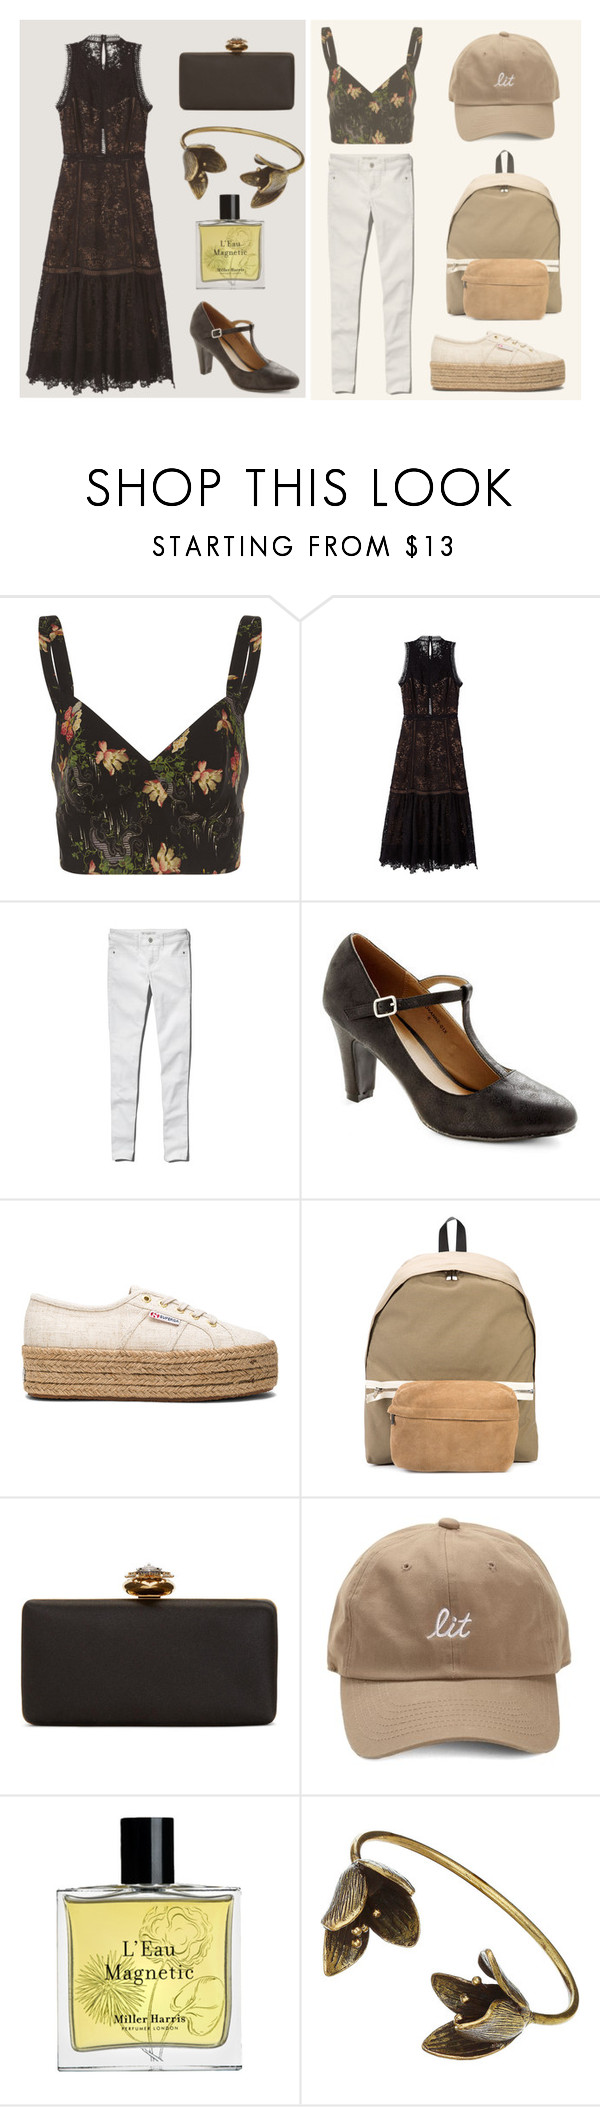 """SKAM 33 (Hikari Ai)"" by hikari-ai on Polyvore featuring мода, J.W. Anderson, Abercrombie & Fitch, Superga, Hender Scheme, Alexander McQueen и Miller Harris"